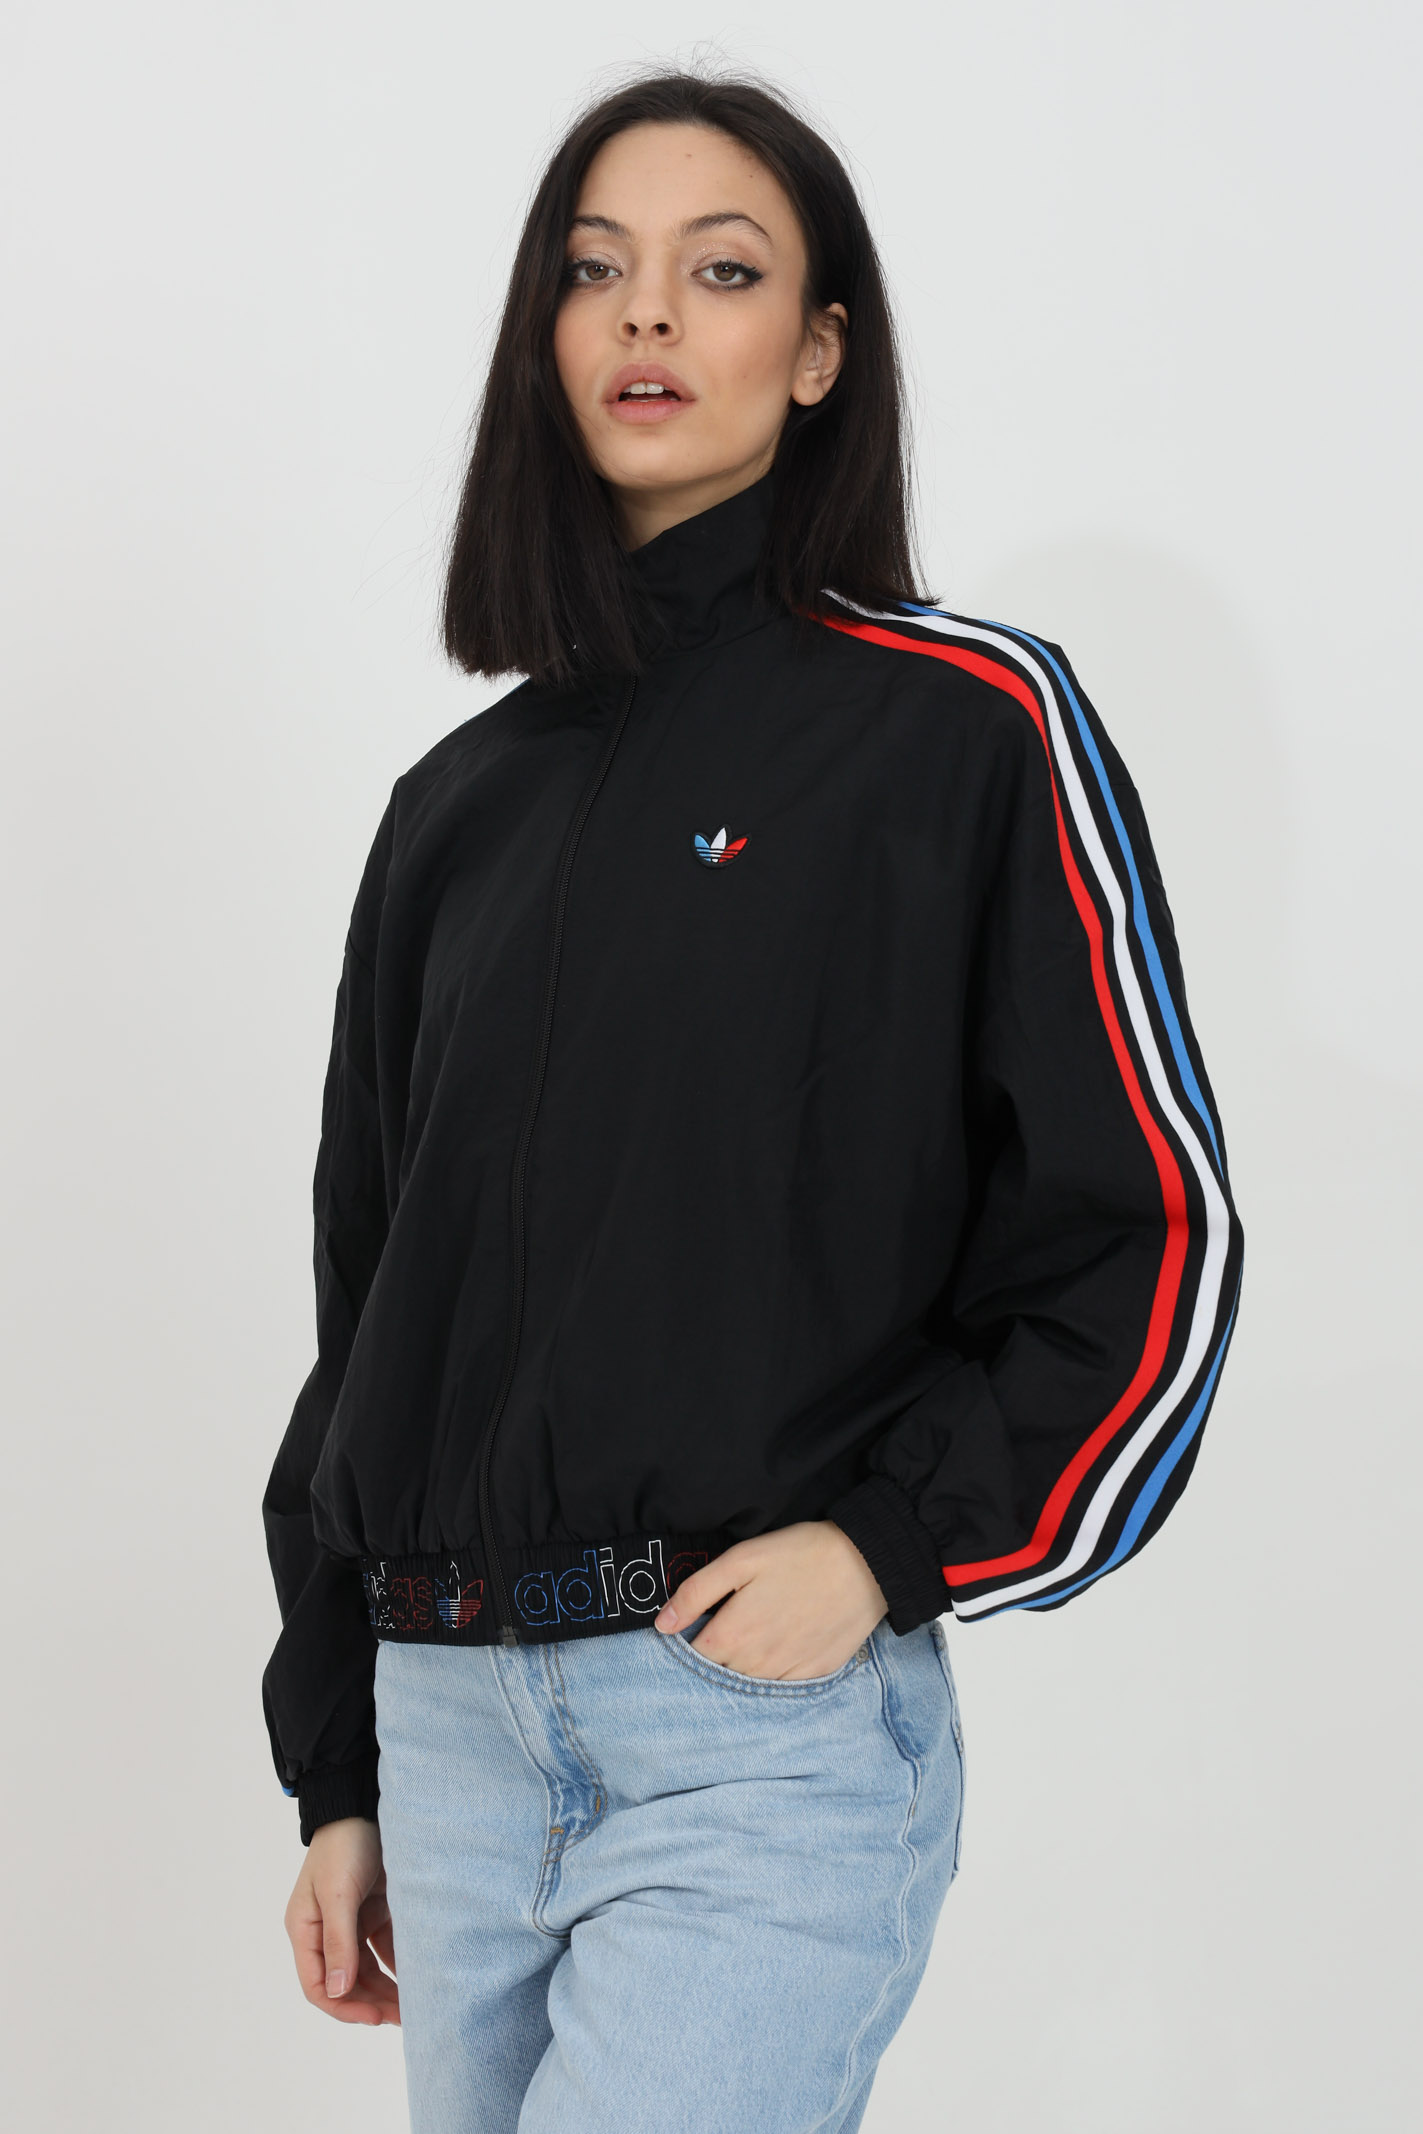 Wind jacket with full zip and multicolor bands ADIDAS | Jacket | GT8464.